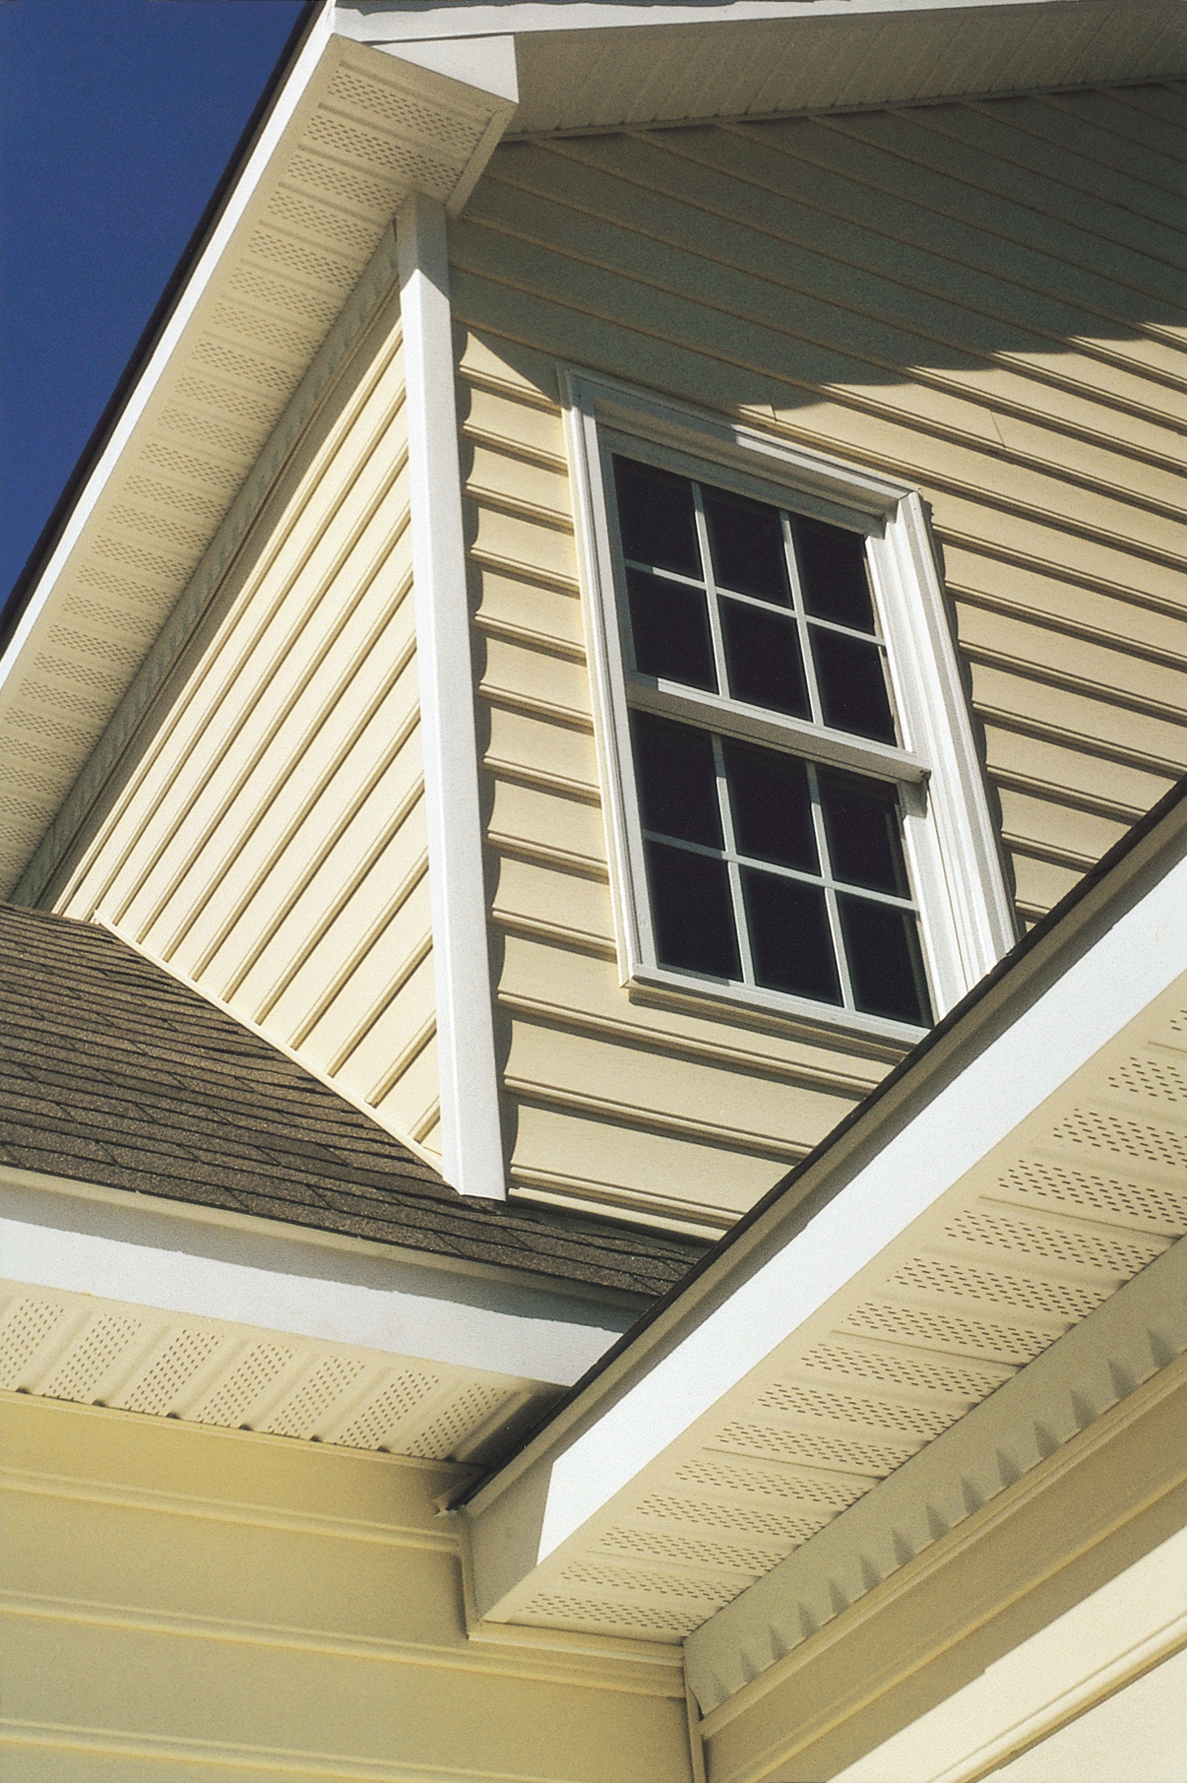 What Do You Know About Siding Important Info For